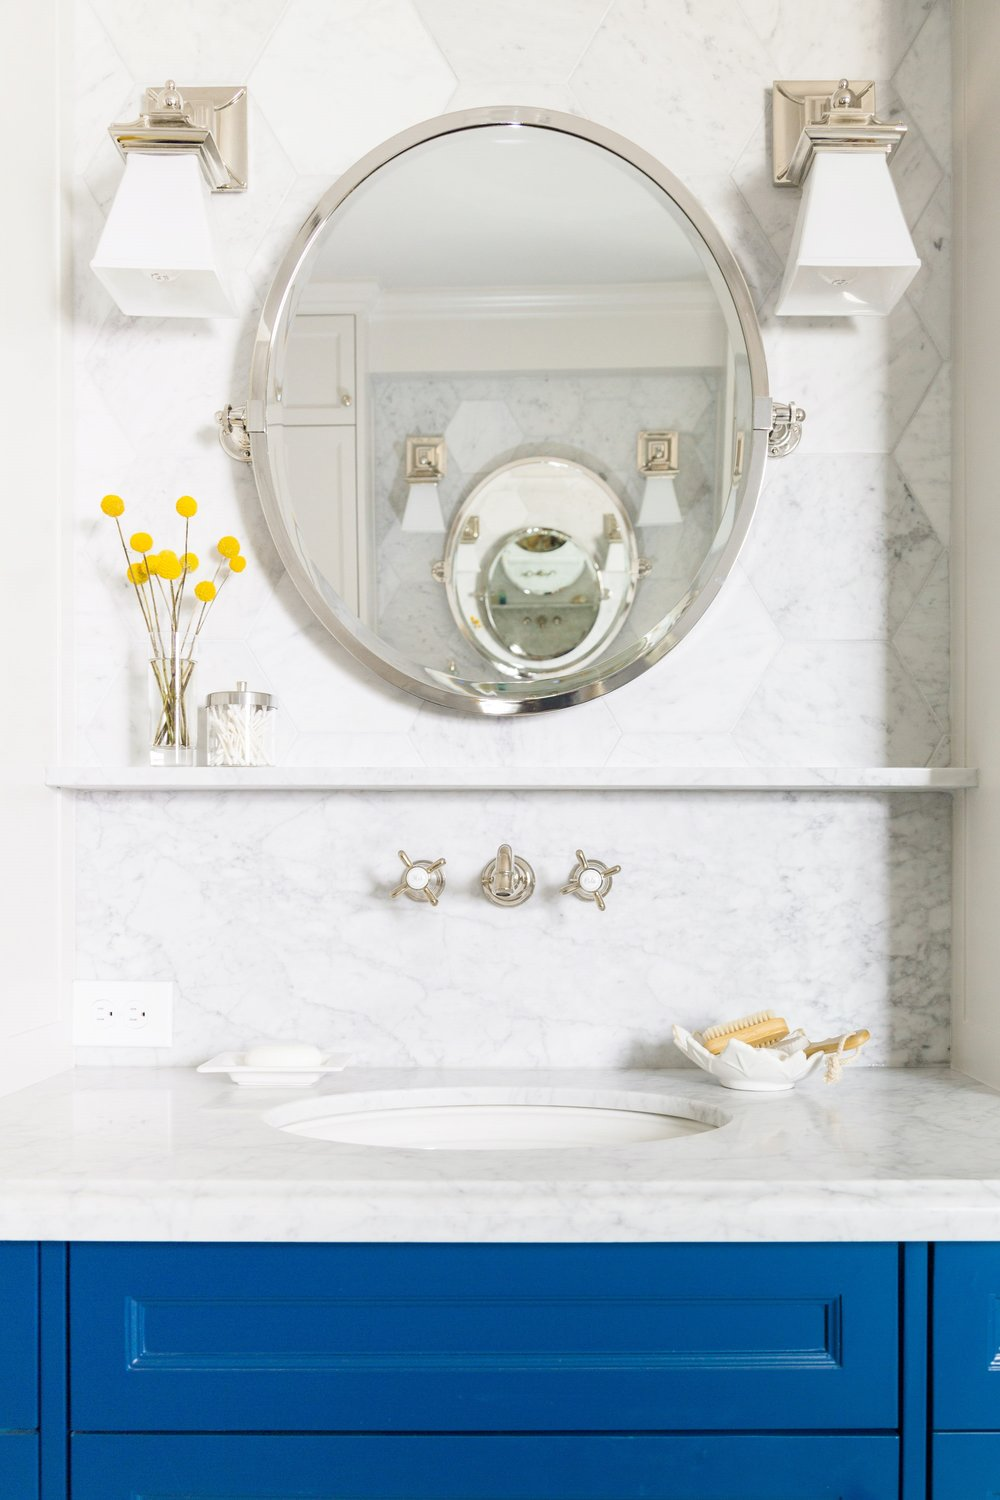 Ideal Wall mount faucet and marble ledge in bathroom remodel Carla Aston Designer Tori